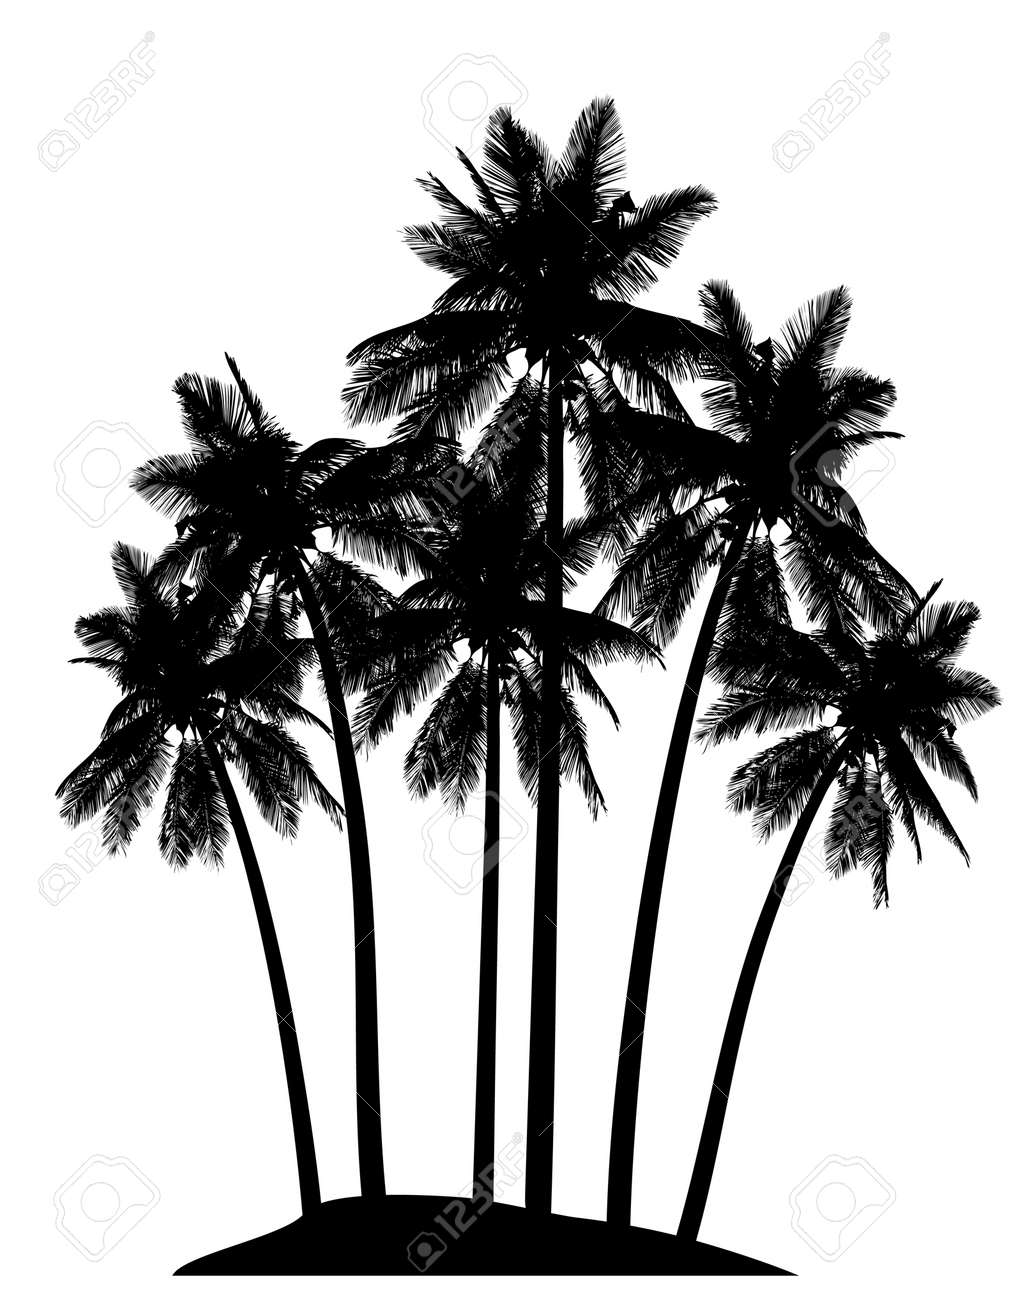 Editable Vector Illustration Of Palm Tree Silhouettes Royalty Free ...